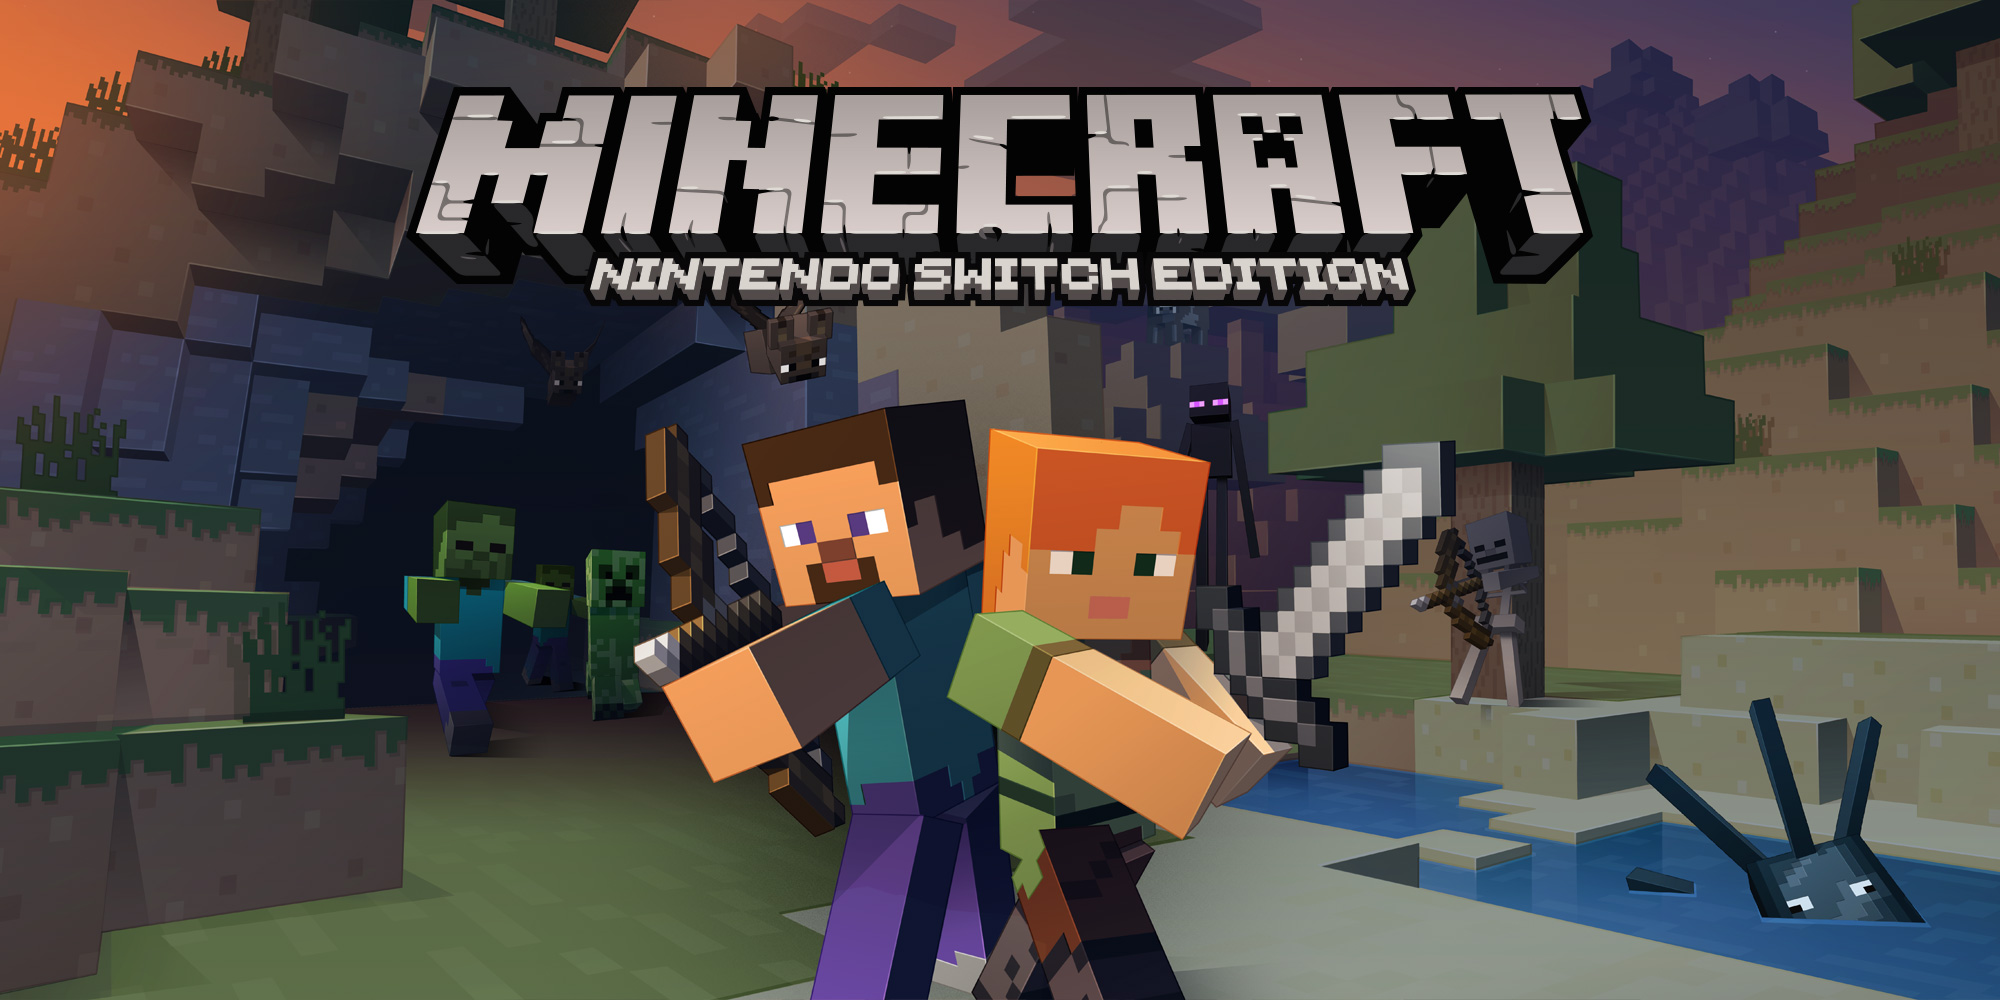 Minecraft: Nintendo Switch edition is not running at 1080p docked due to switching issues, could be patched